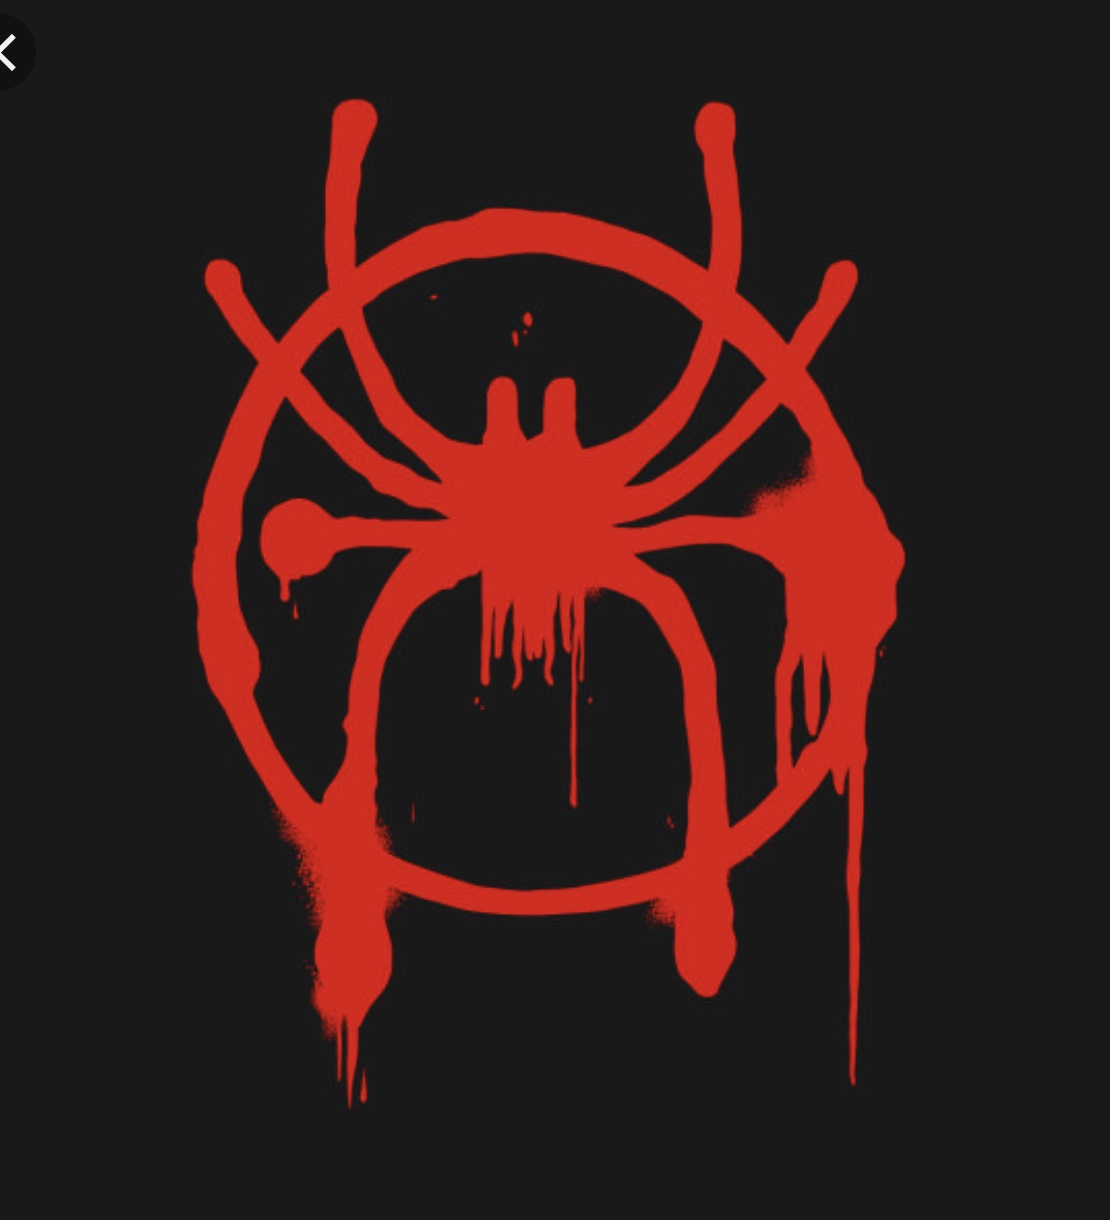 new spiderman logo symbol.